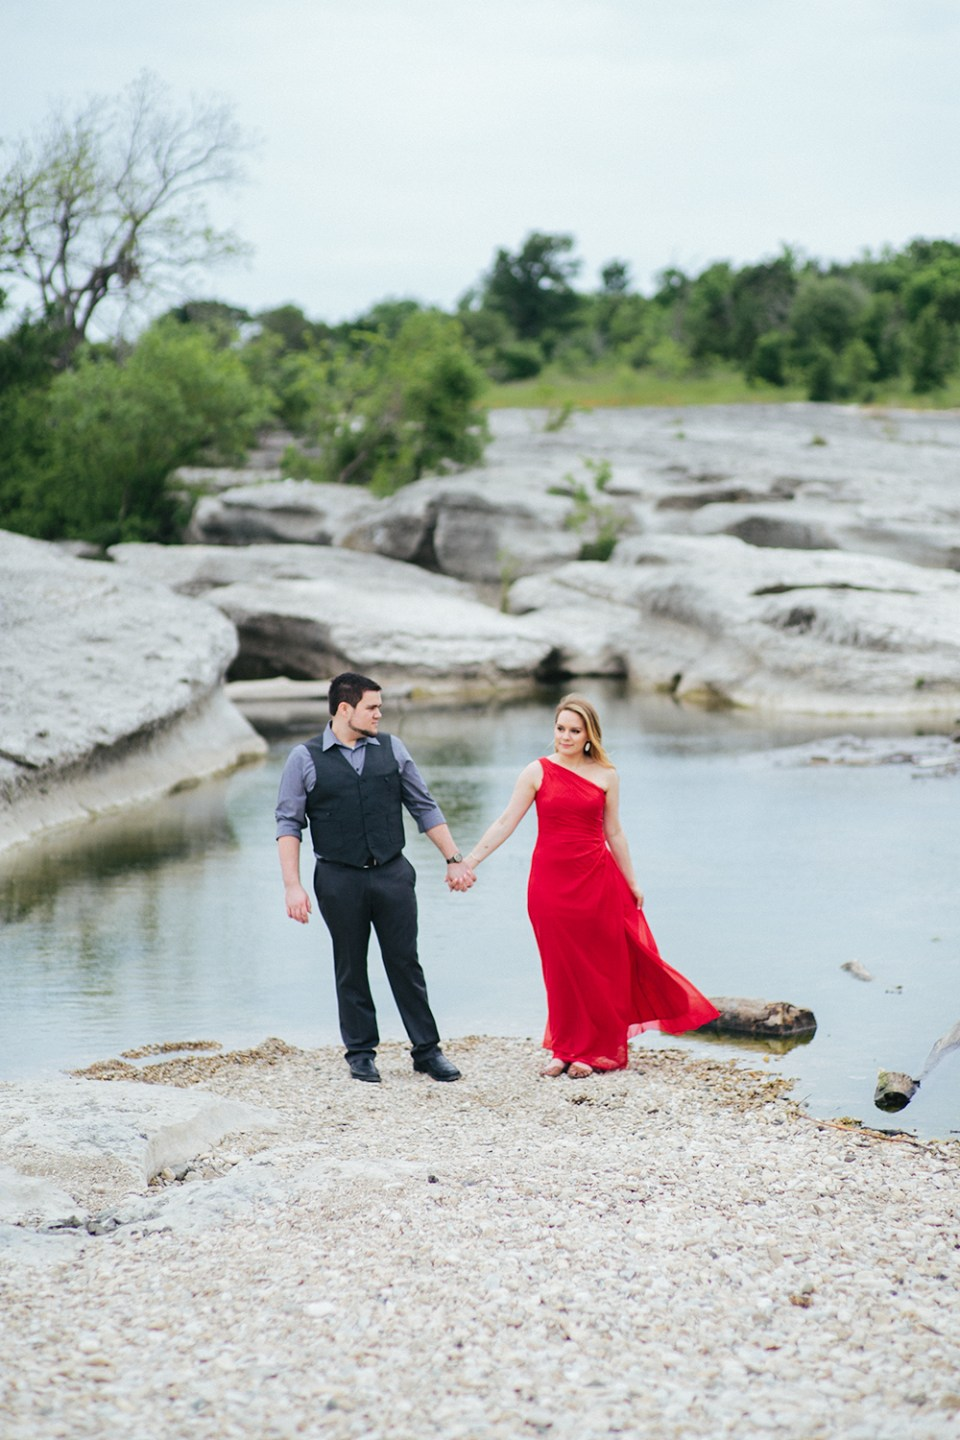 mckinney-falls-engagement-photography-austin-texas-13